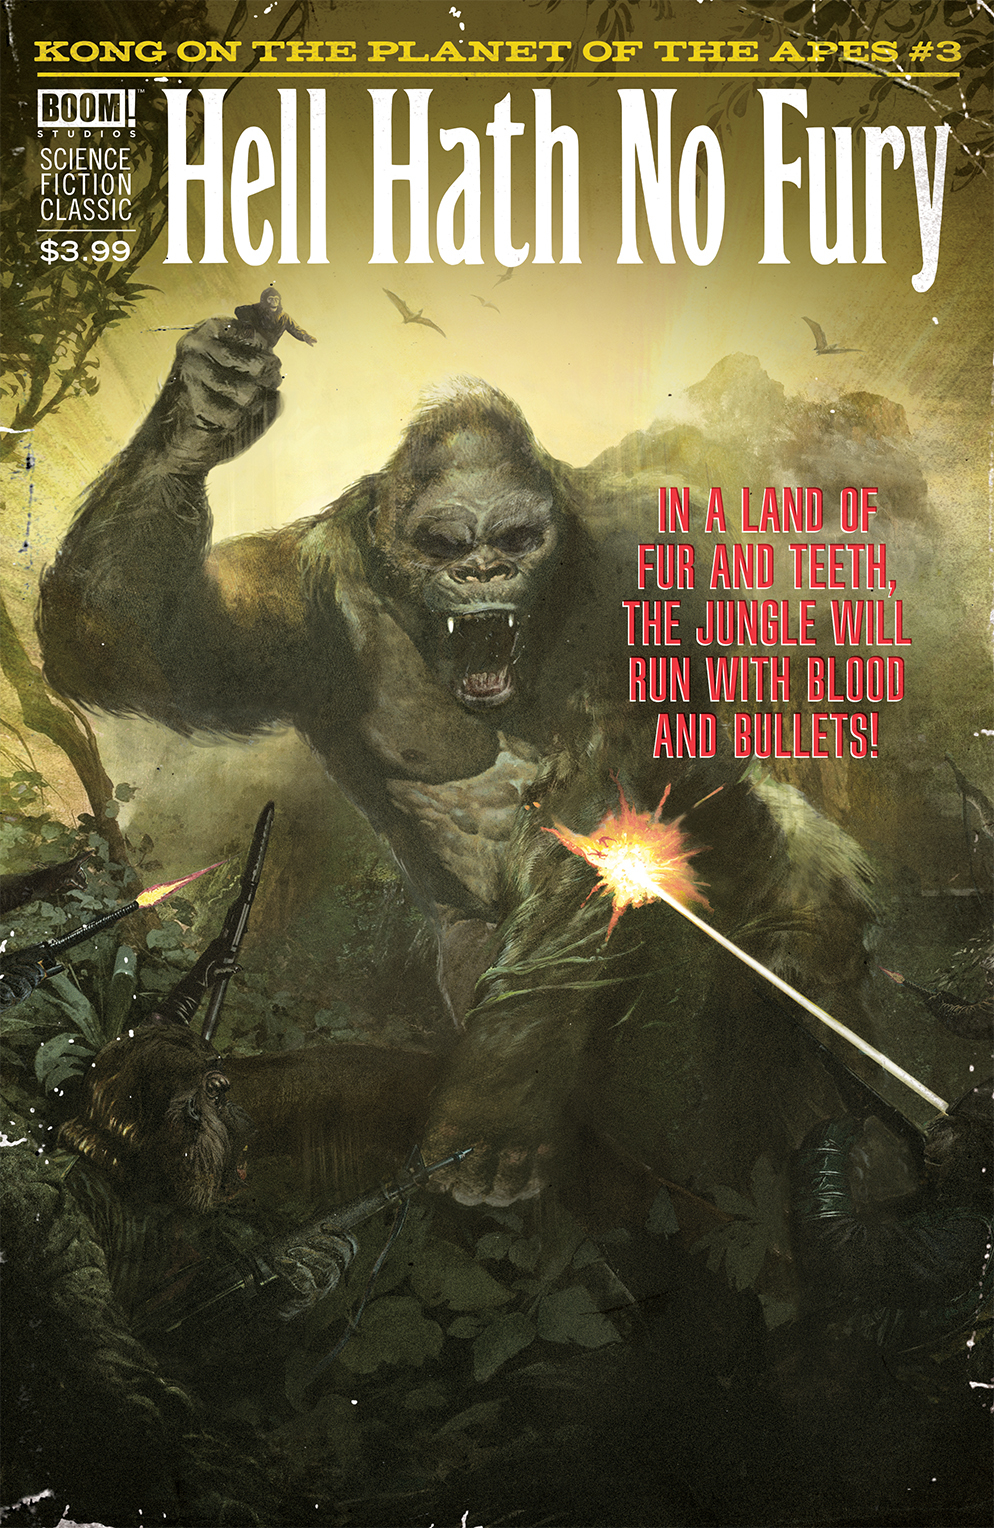 KONG ON PLANET OF APES #3 CLASSIC PULP DALTON VAR